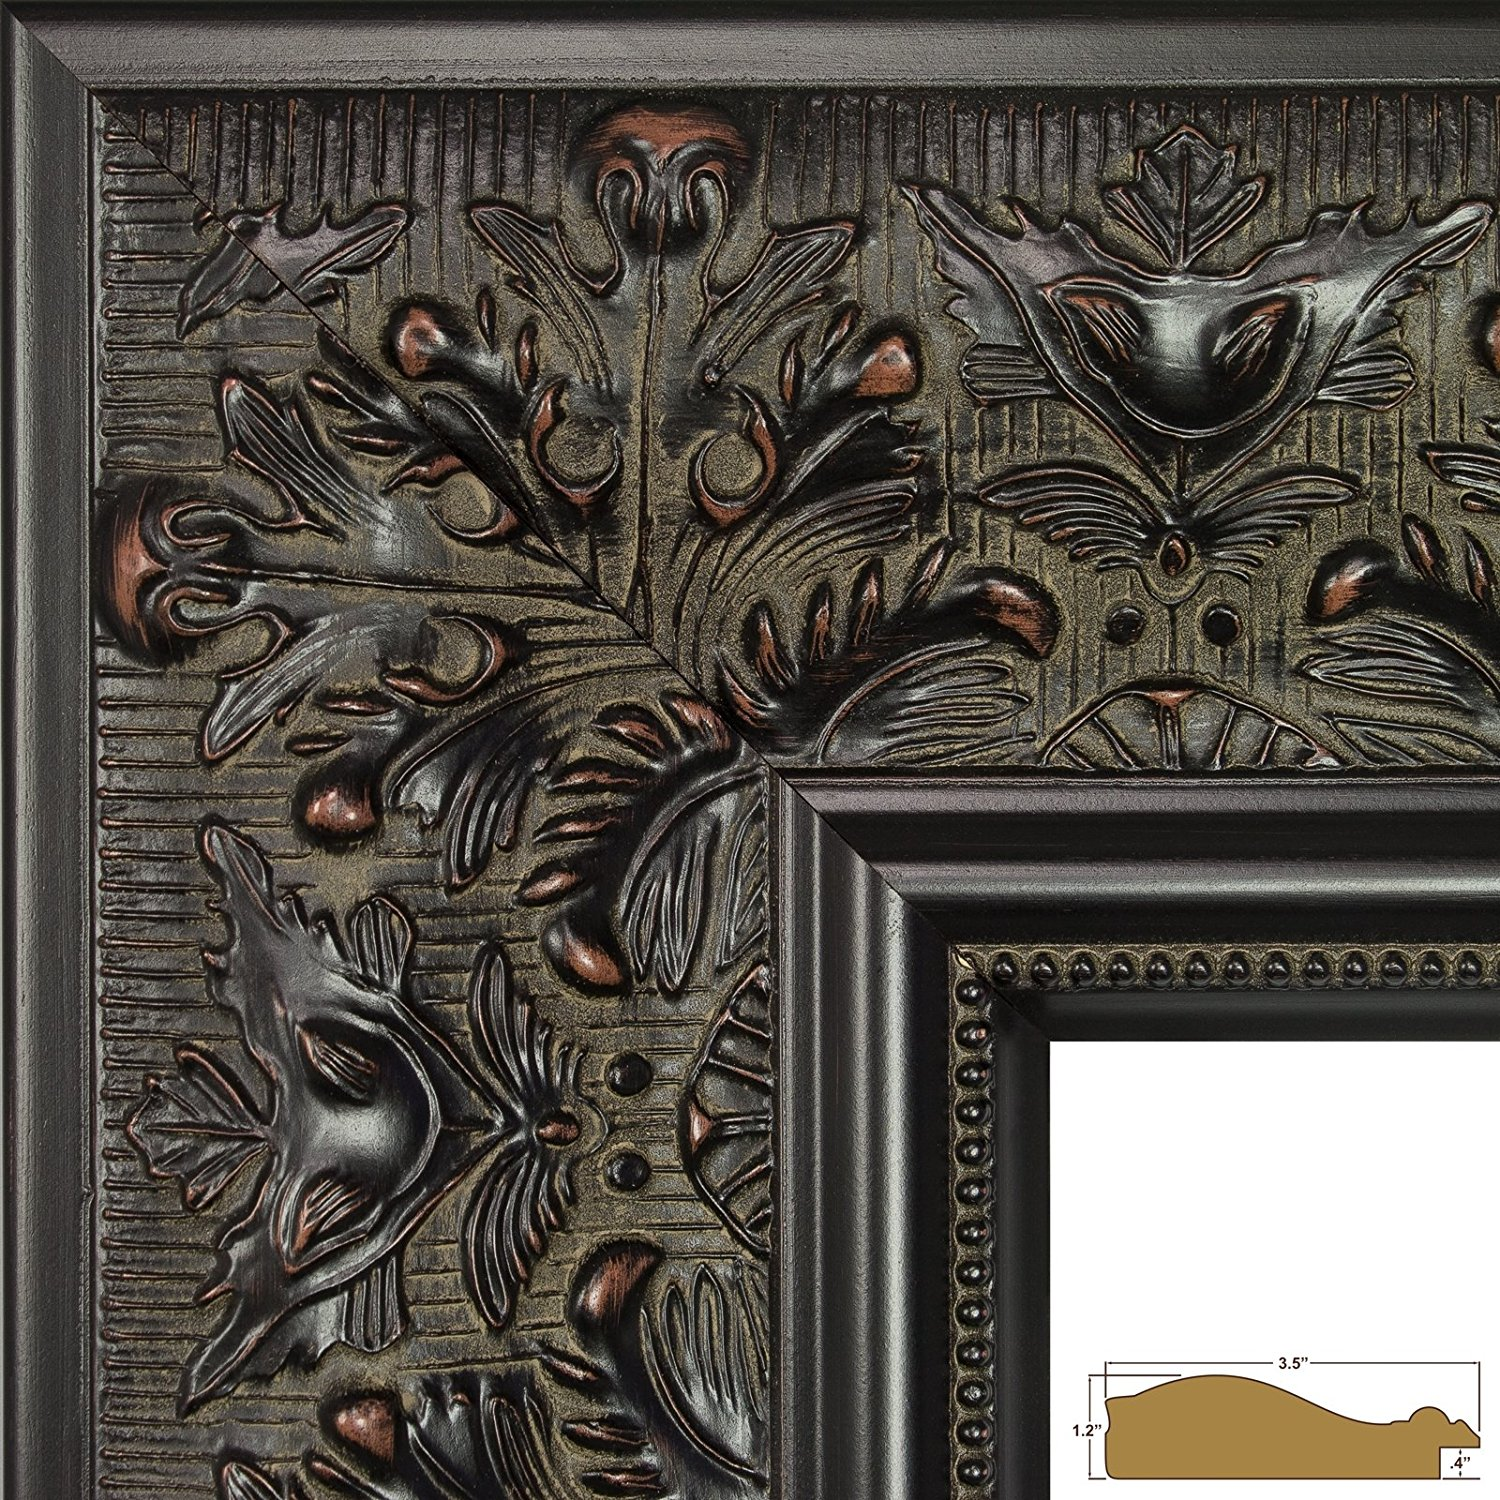 Craig Frames Borromini, 8.5 by 11-Inch Ornate Picture Frame, Black Walnut